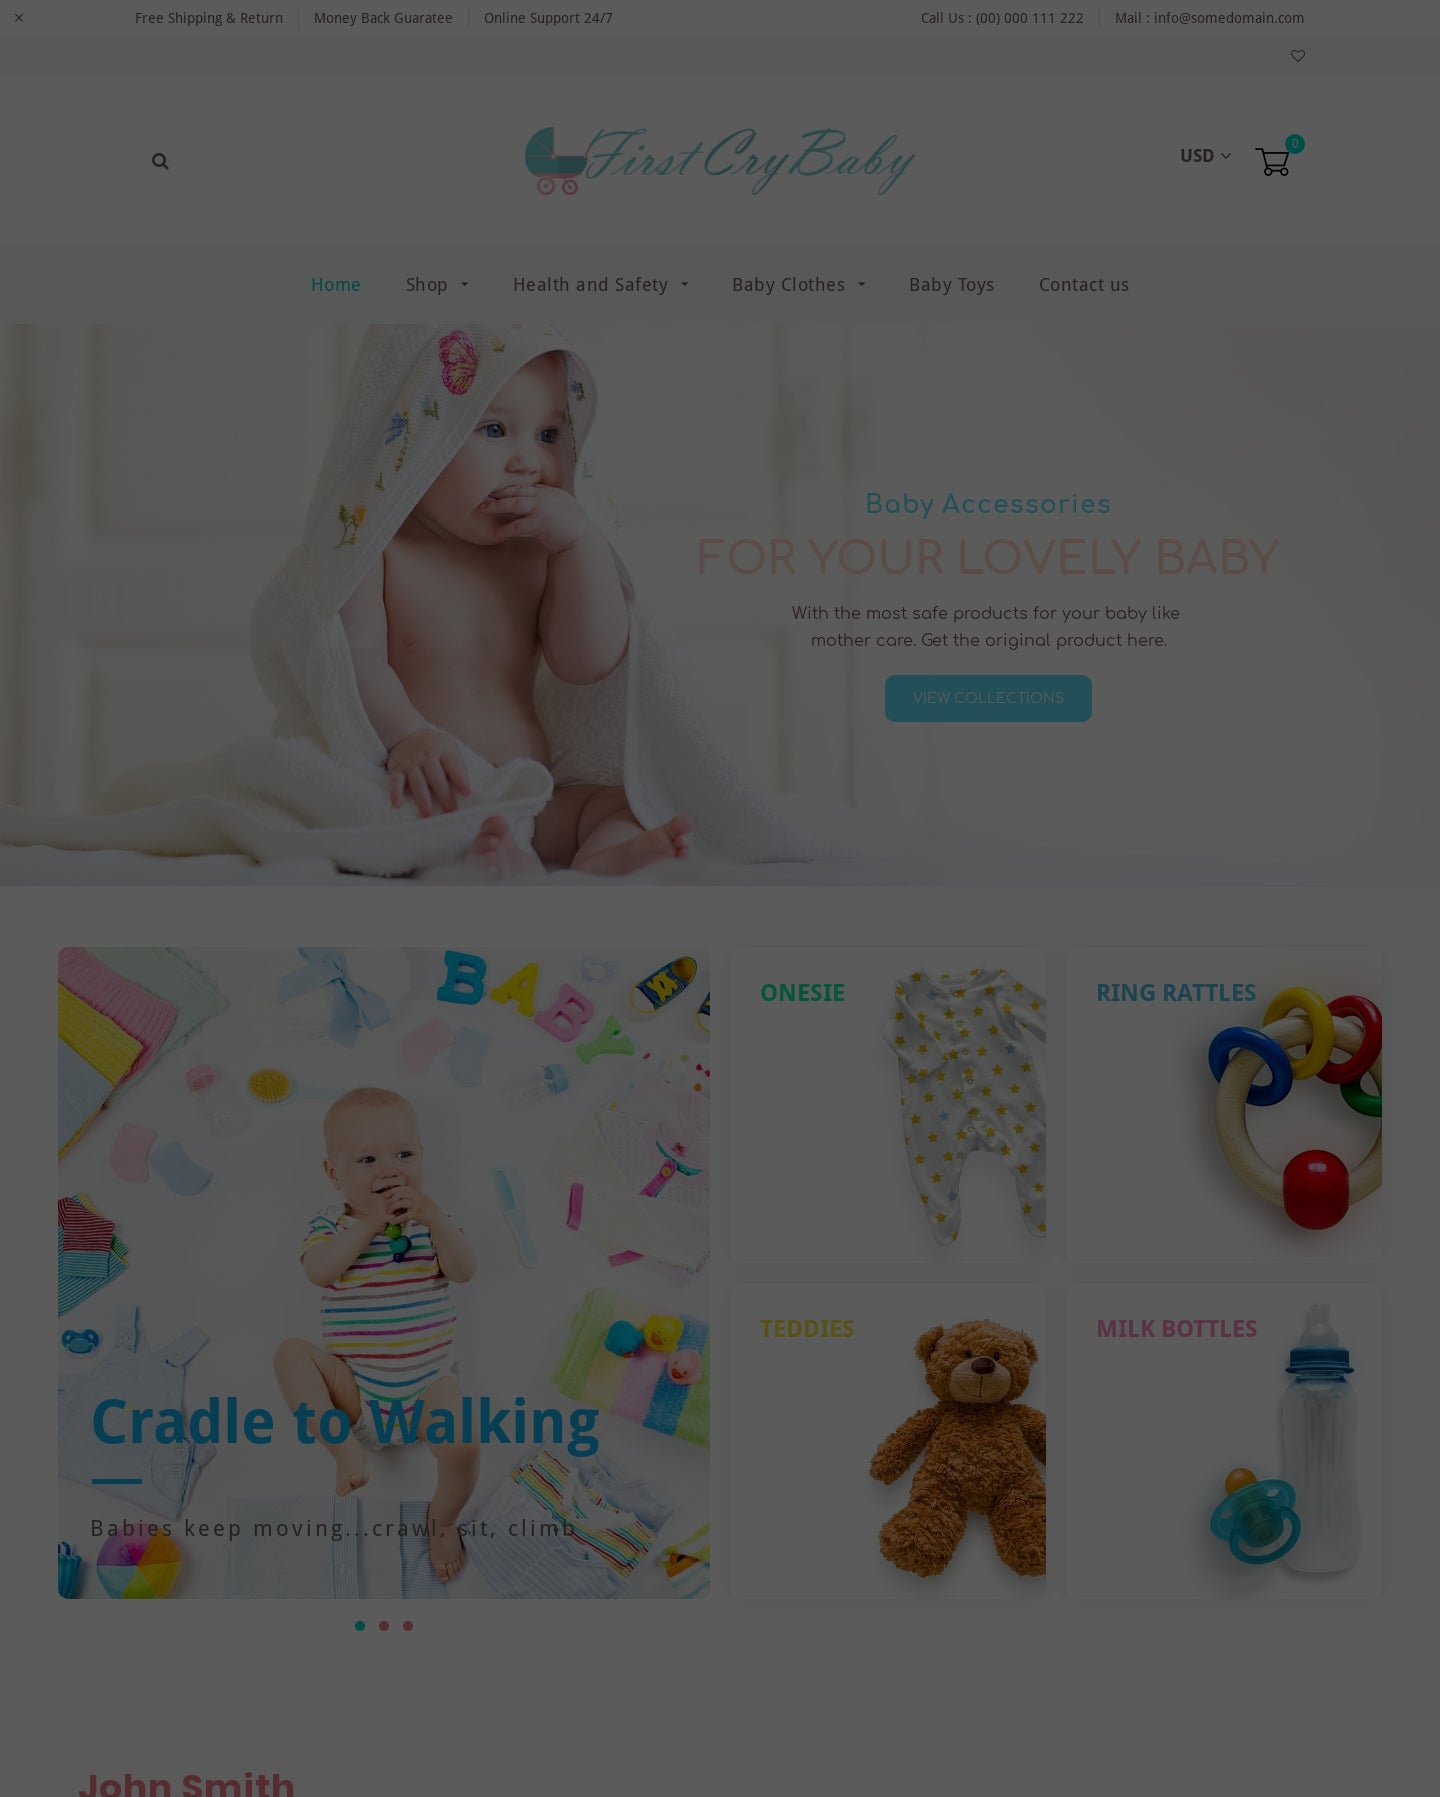 Baby Products Drop shipping website Screenshot - 2